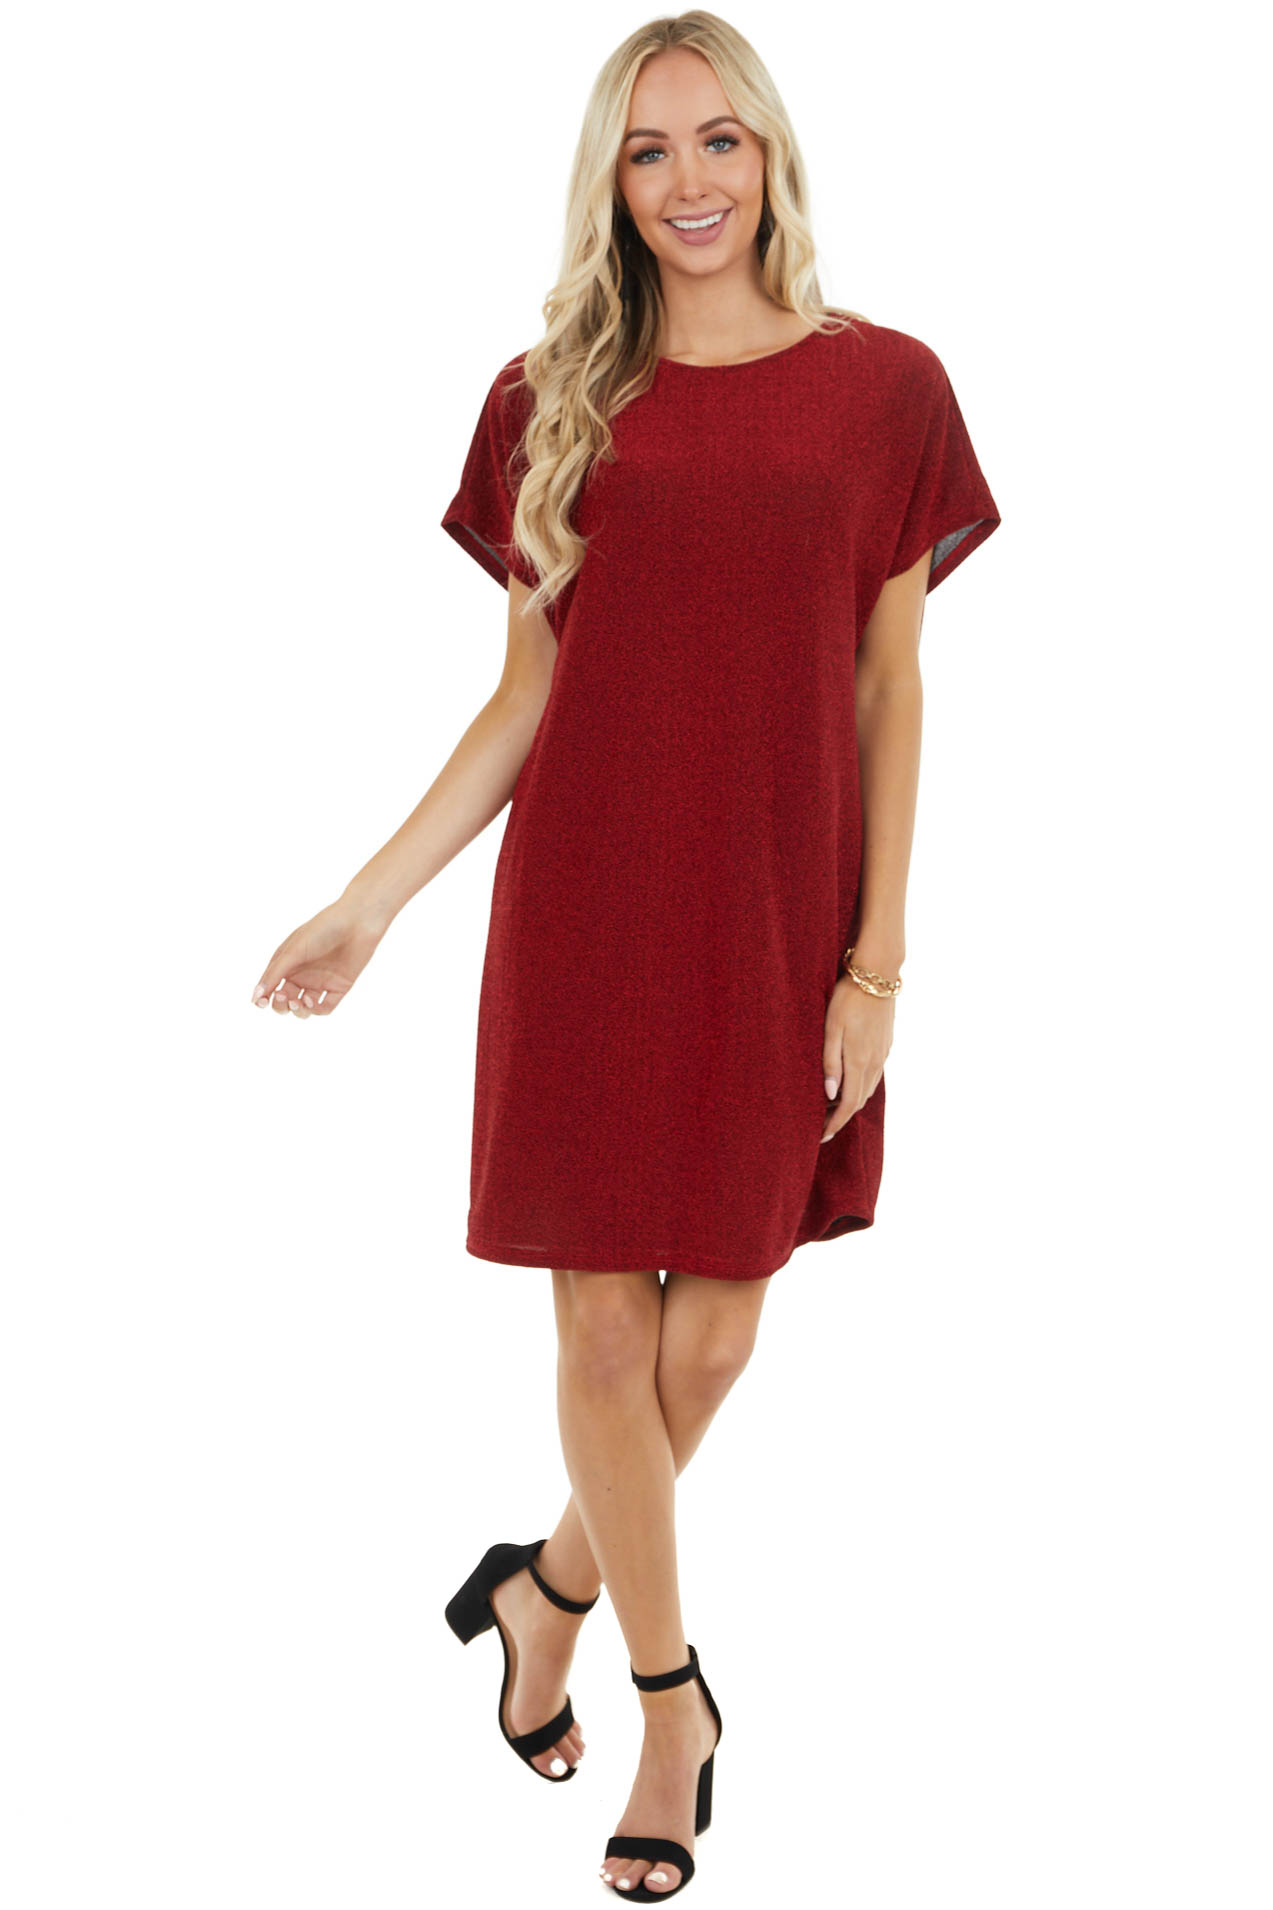 Ruby Red Sparkly Short Sleeve Mini Knit Dress